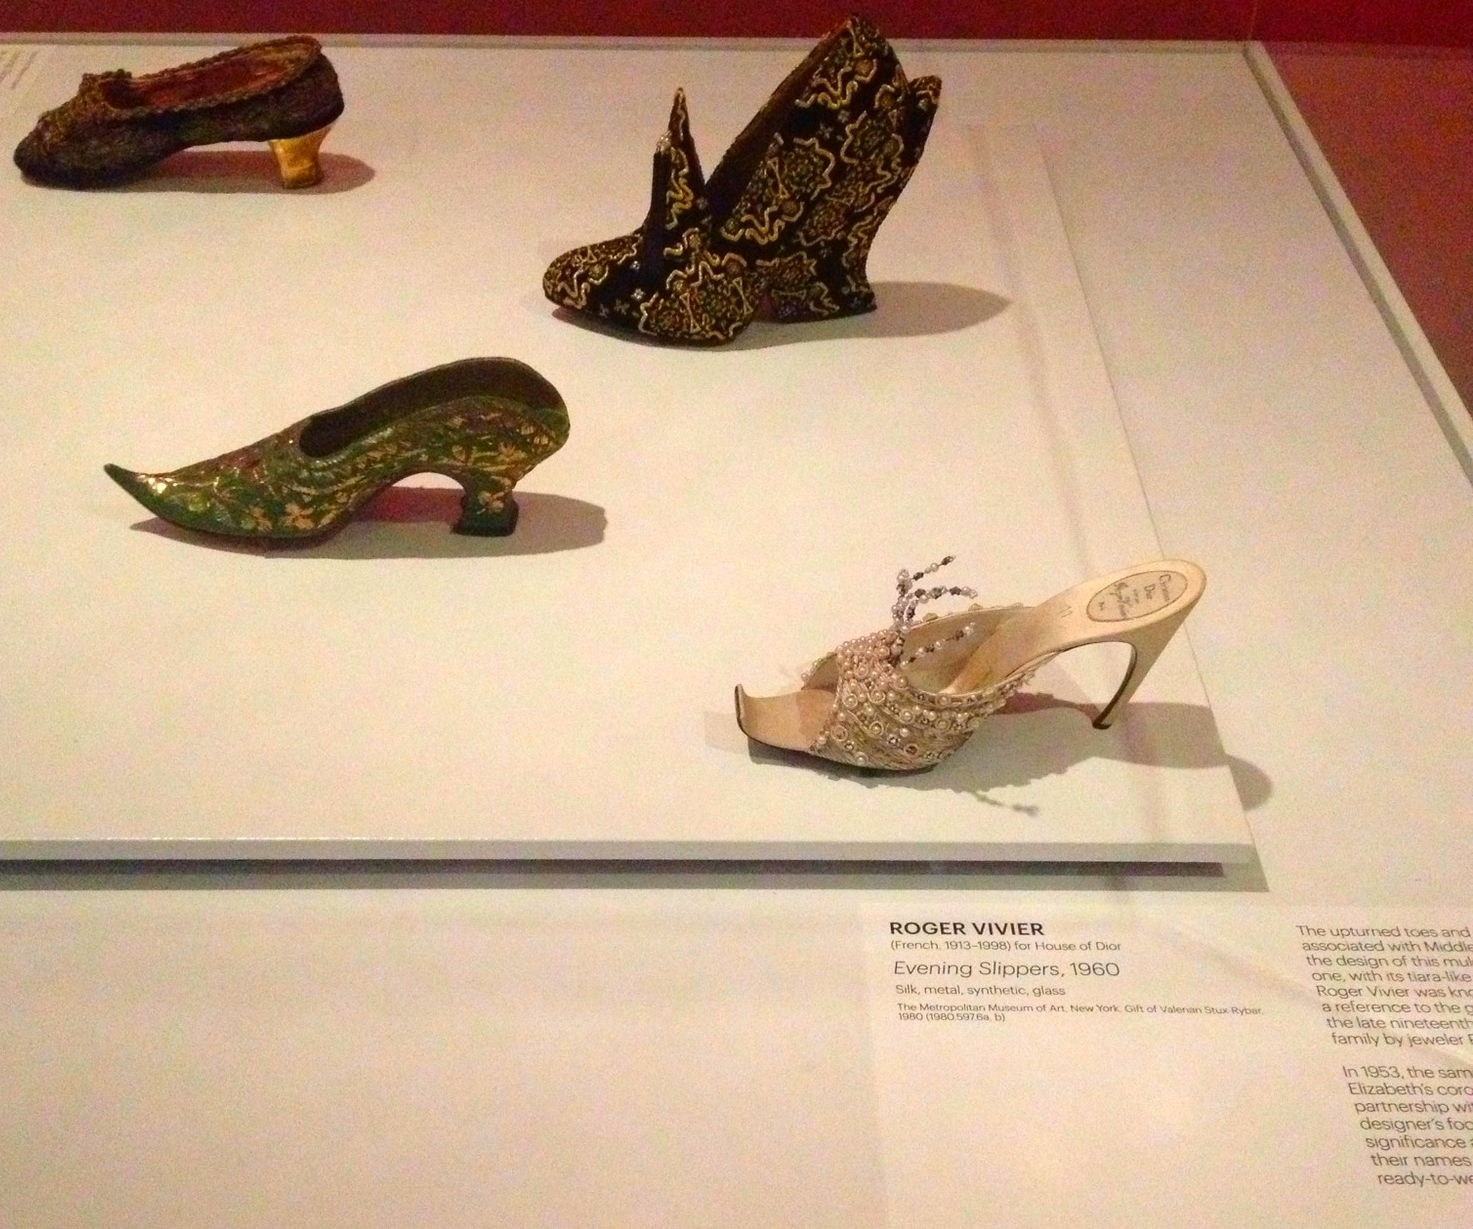 Antique Shoes & Roger Vivier, Evening Slipper, 1960